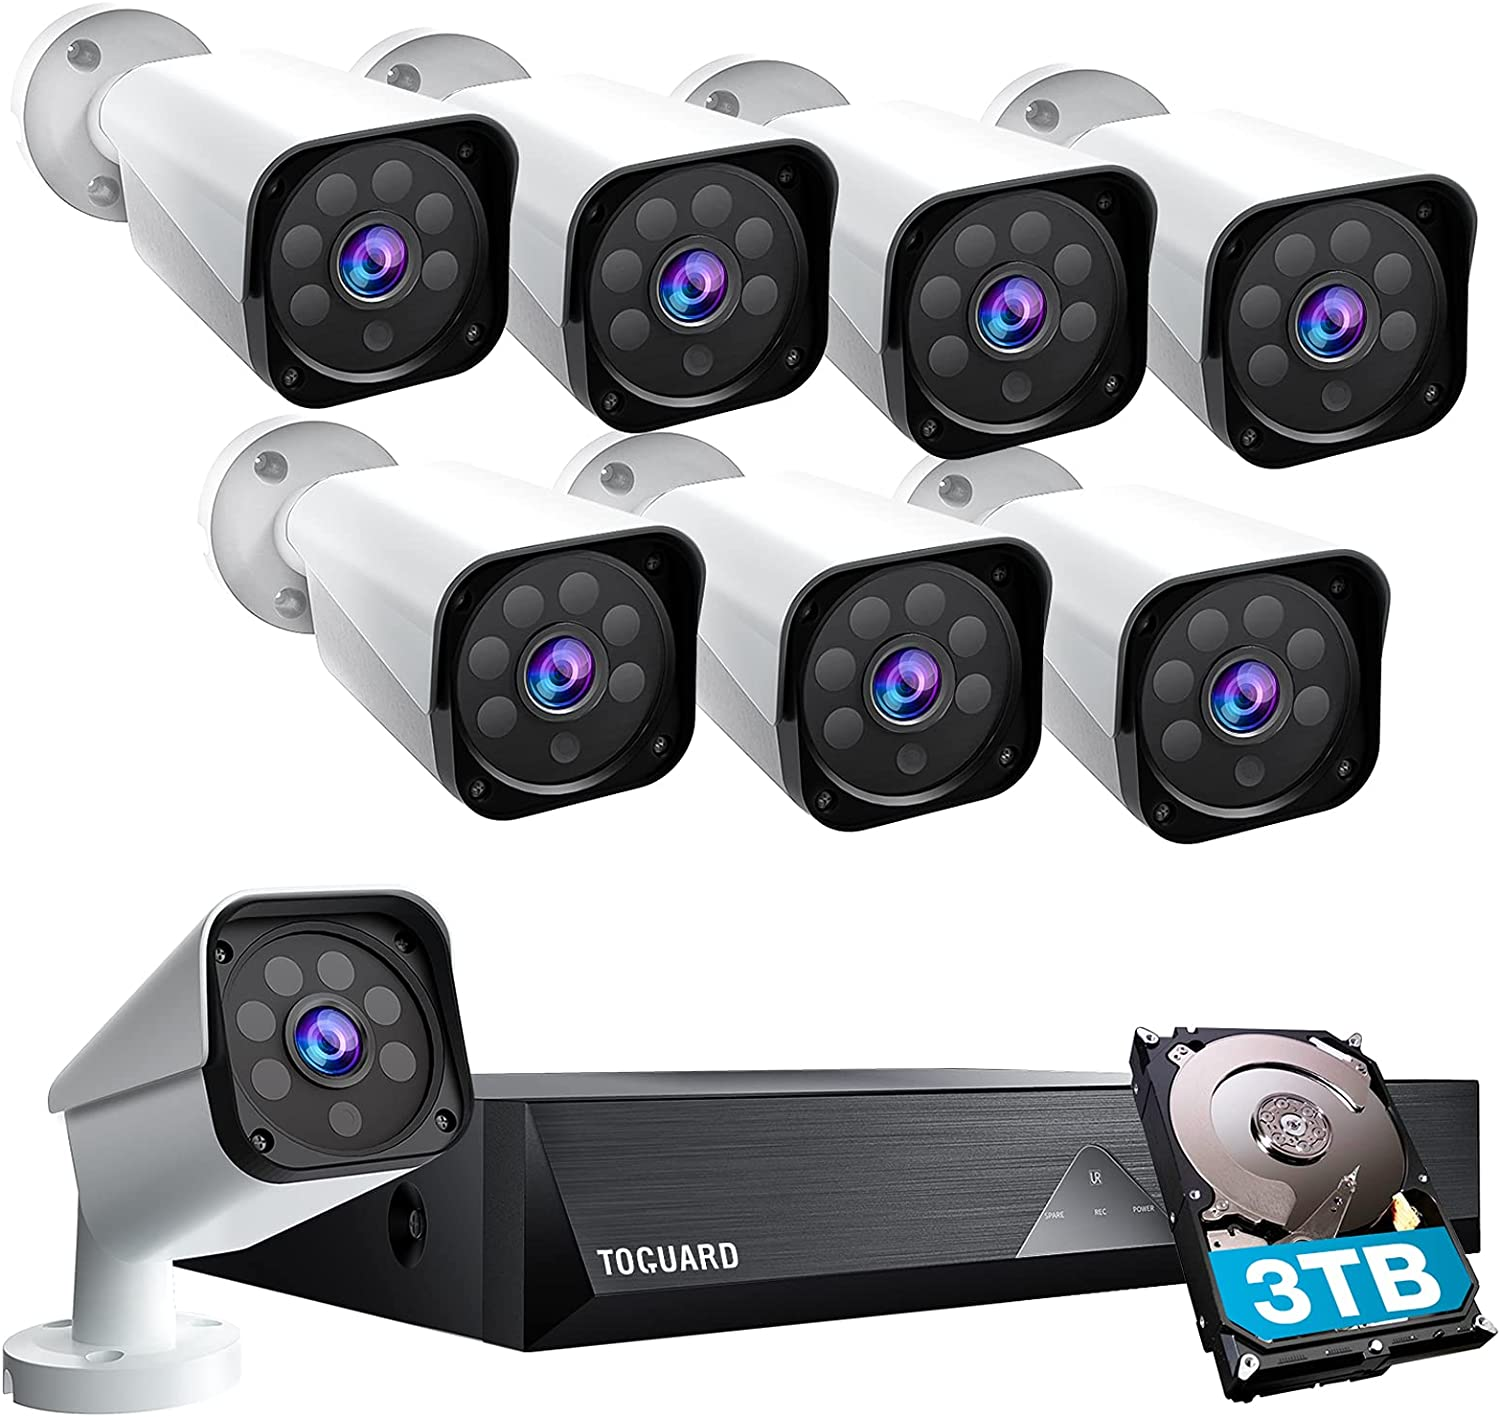 8CH 1080P Security Camera System with 3TB Hard Drive Home Outdoor Lite Wired DVR Security Surveillance Cameras IP66 Weatherproof CCTV Camera, 100ft Night Vision,Motion Email Alert, Remote Access